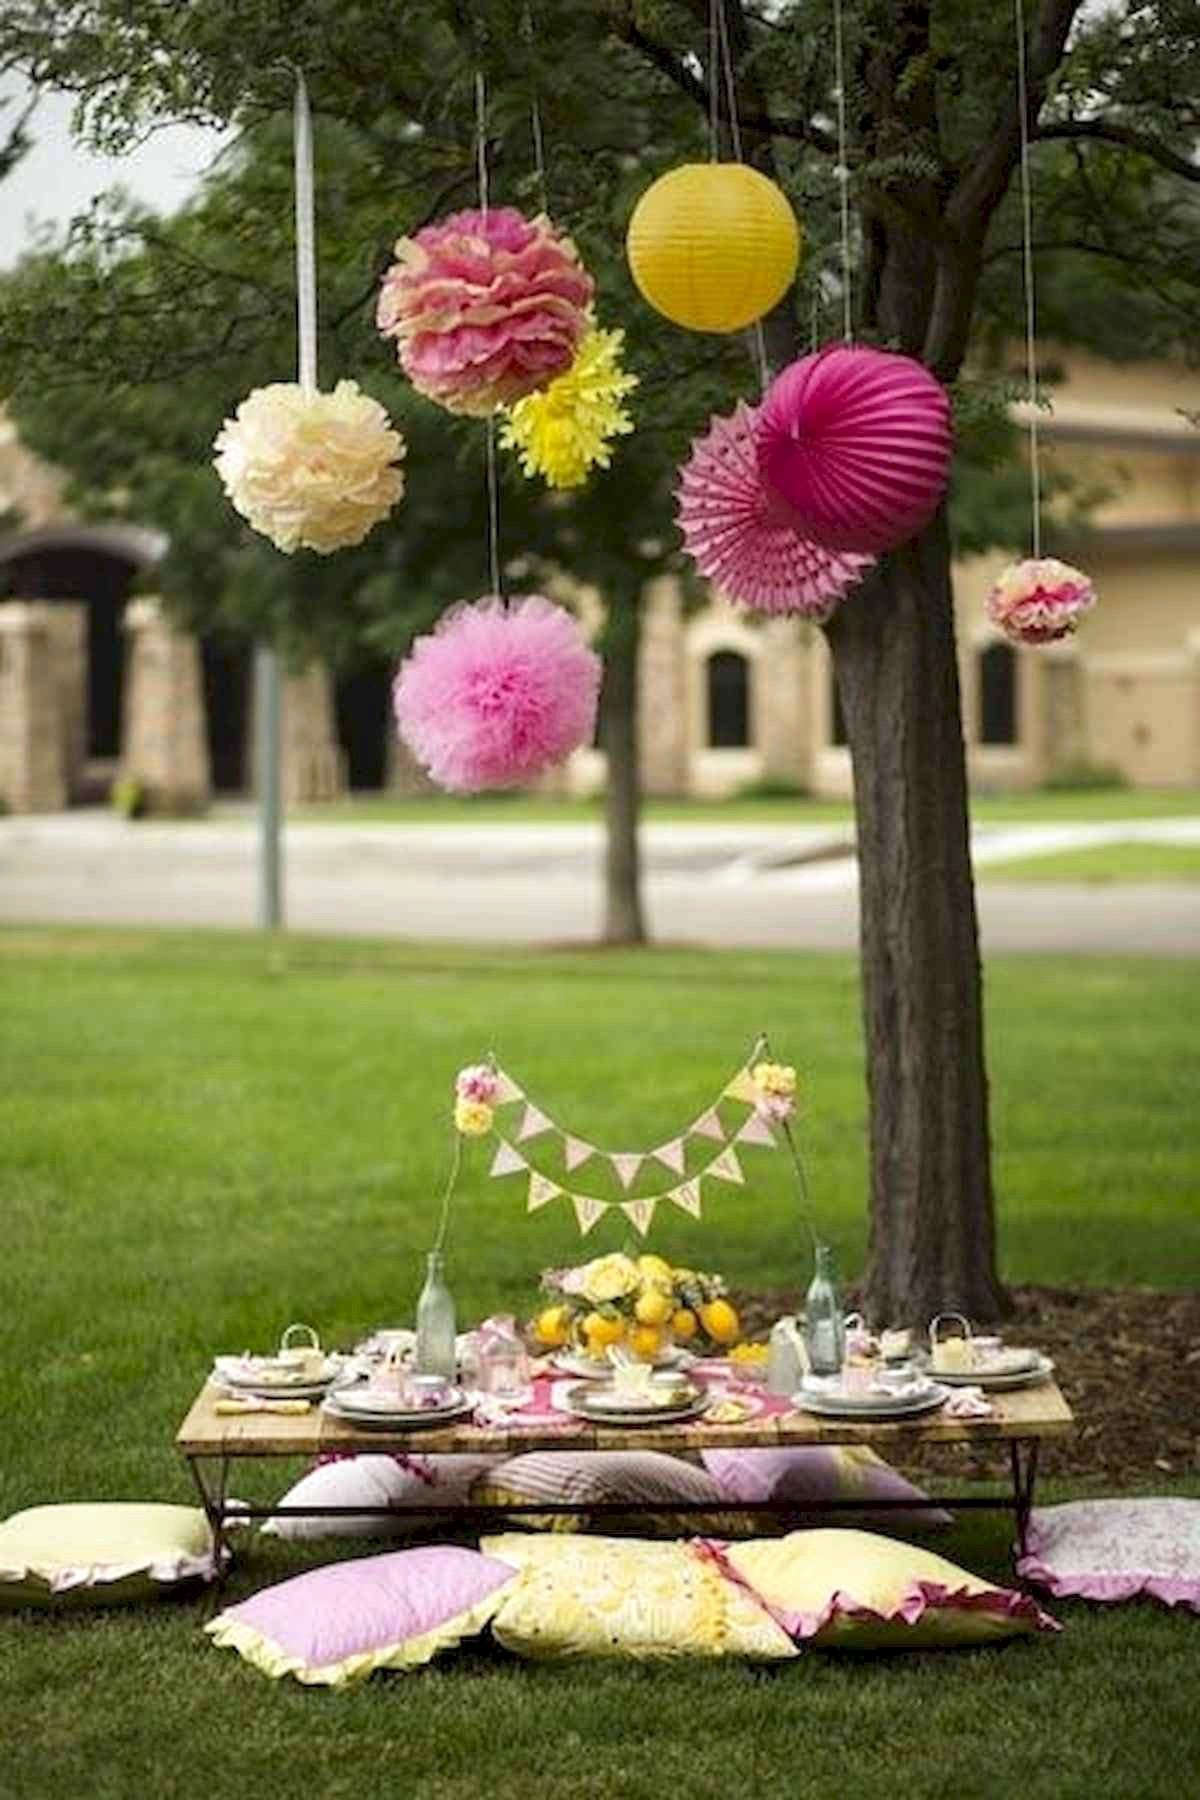 Birthday Decoration Ideas In Park Luxury Best Outdoor Summer Party Decorations Ideas Frugal Living